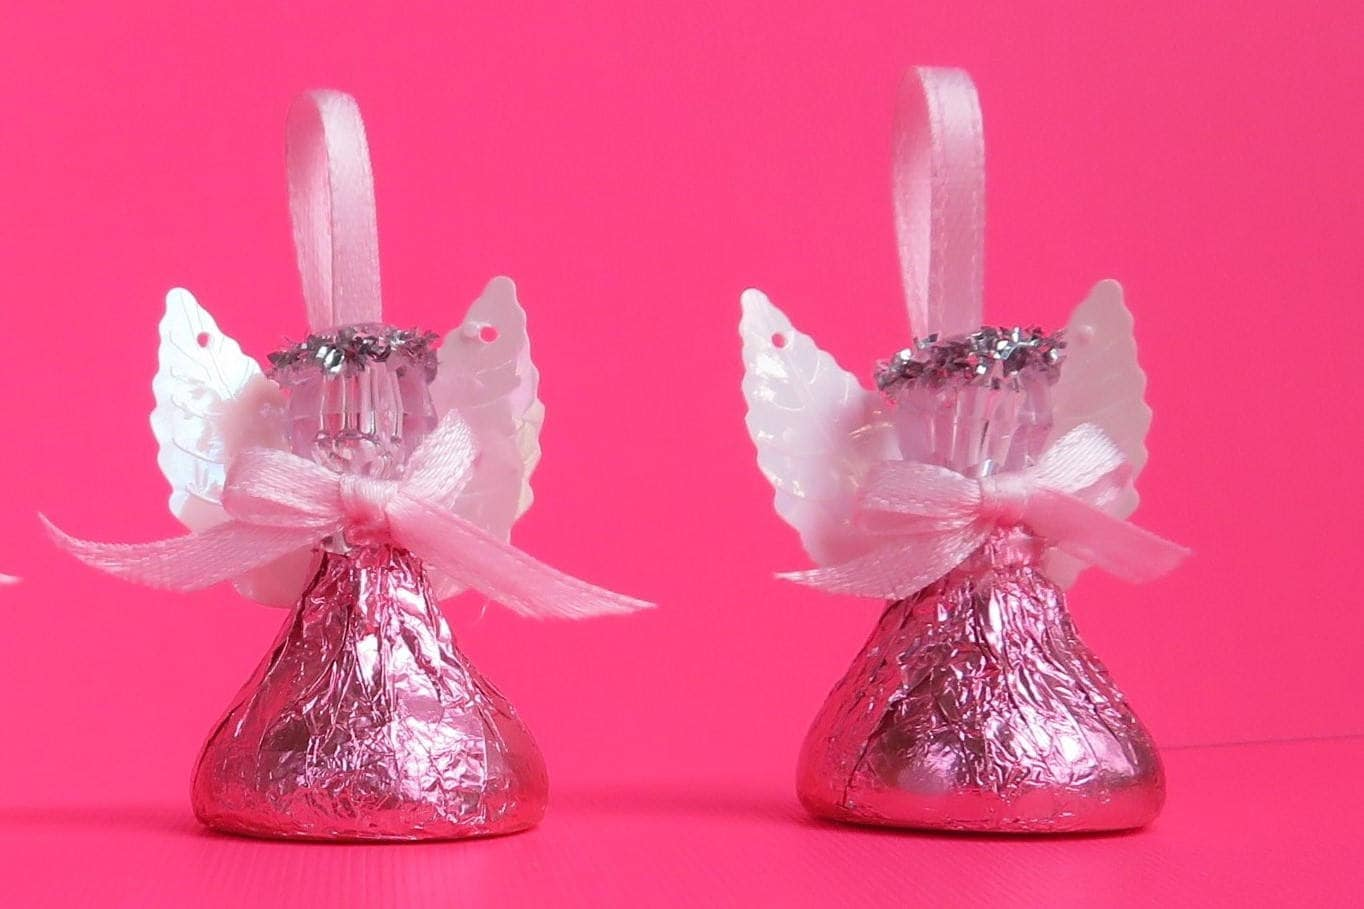 PINK Chocolate Candy Angels Set of 48 Angels Wrapped With